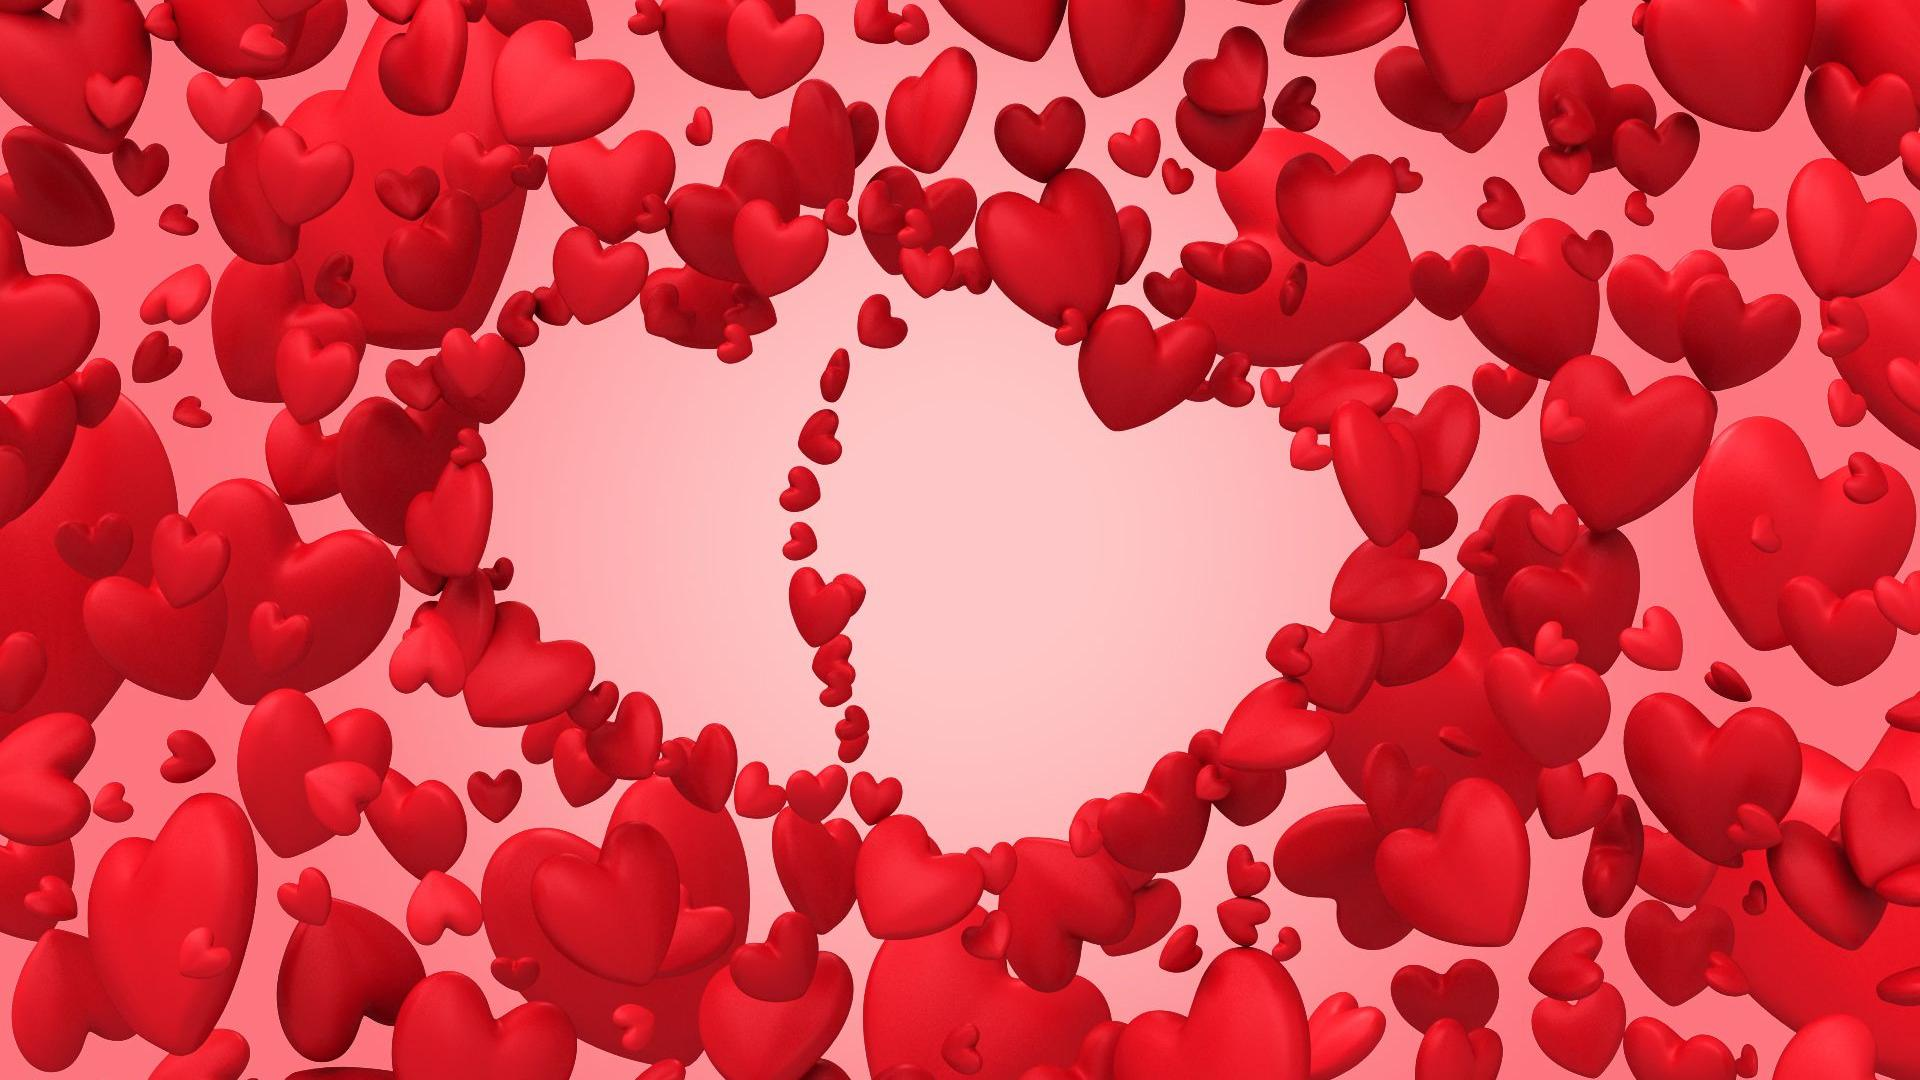 Valentines Day Love Wallpaper Theme Image Free Hd Desktop